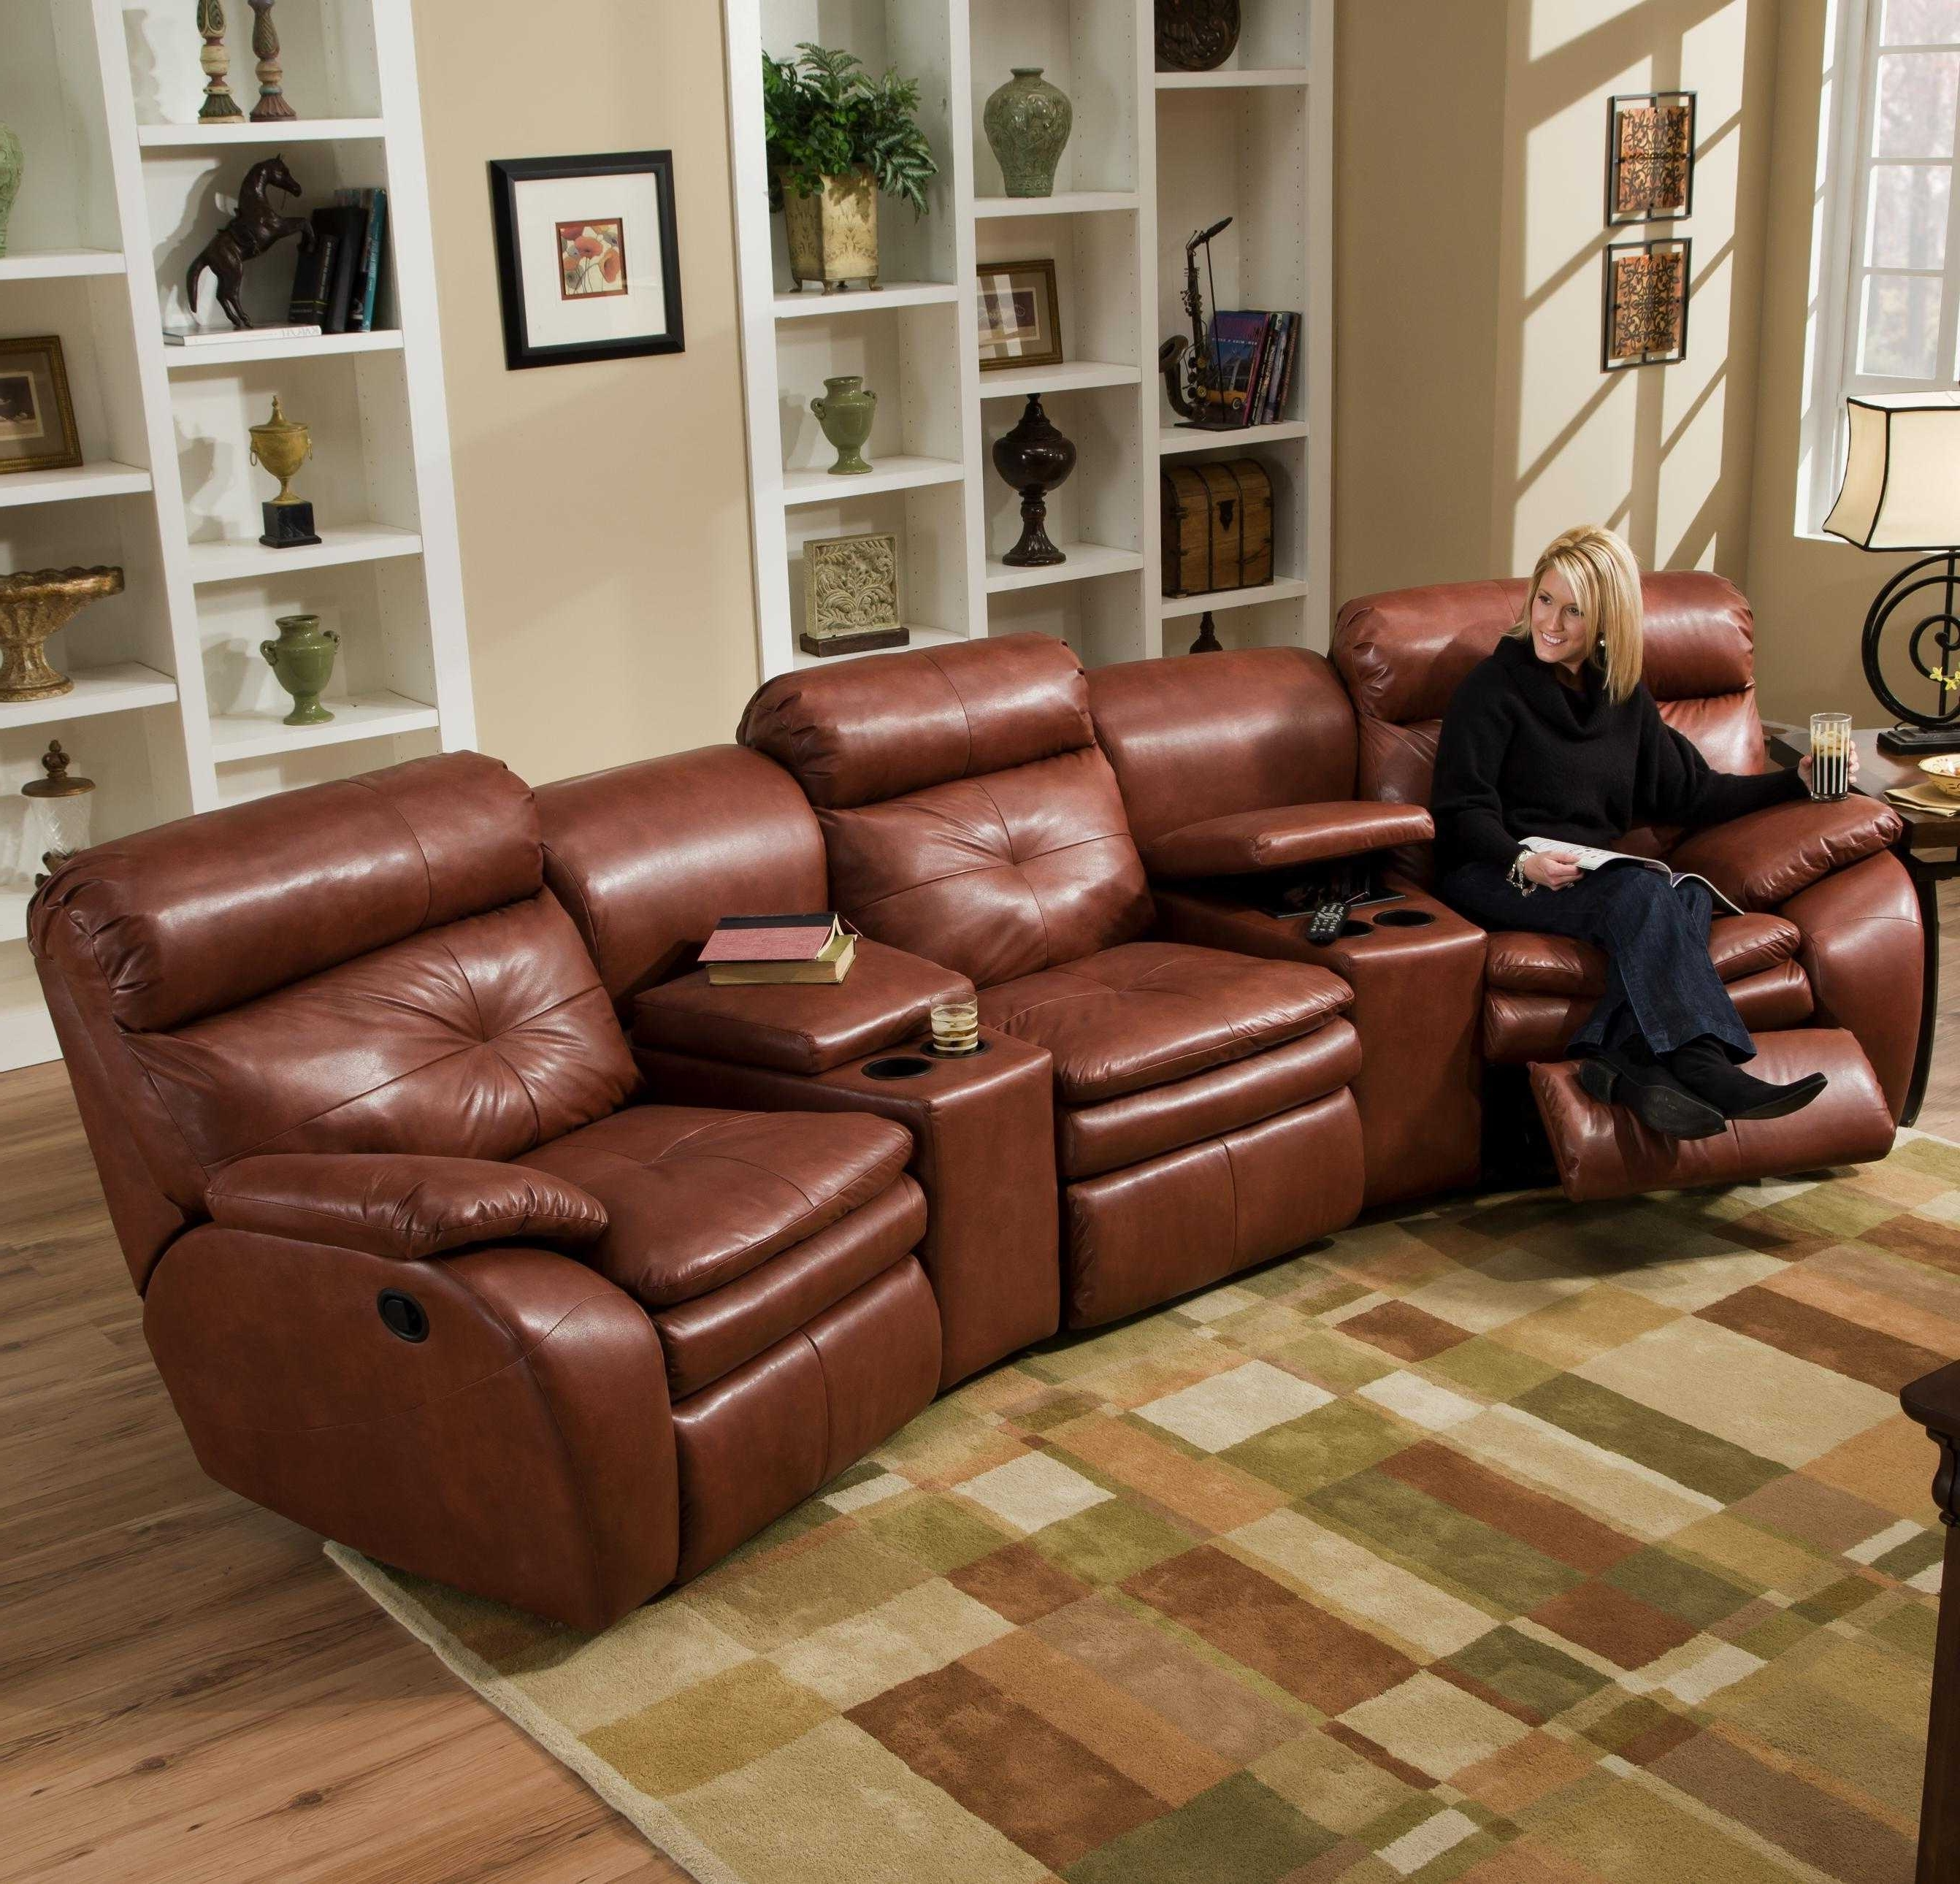 Sectional Sofas With Cup Holders Within 2018 Sectional Sofas With Recliners And Cup Holders Sofa Furniture (View 11 of 15)